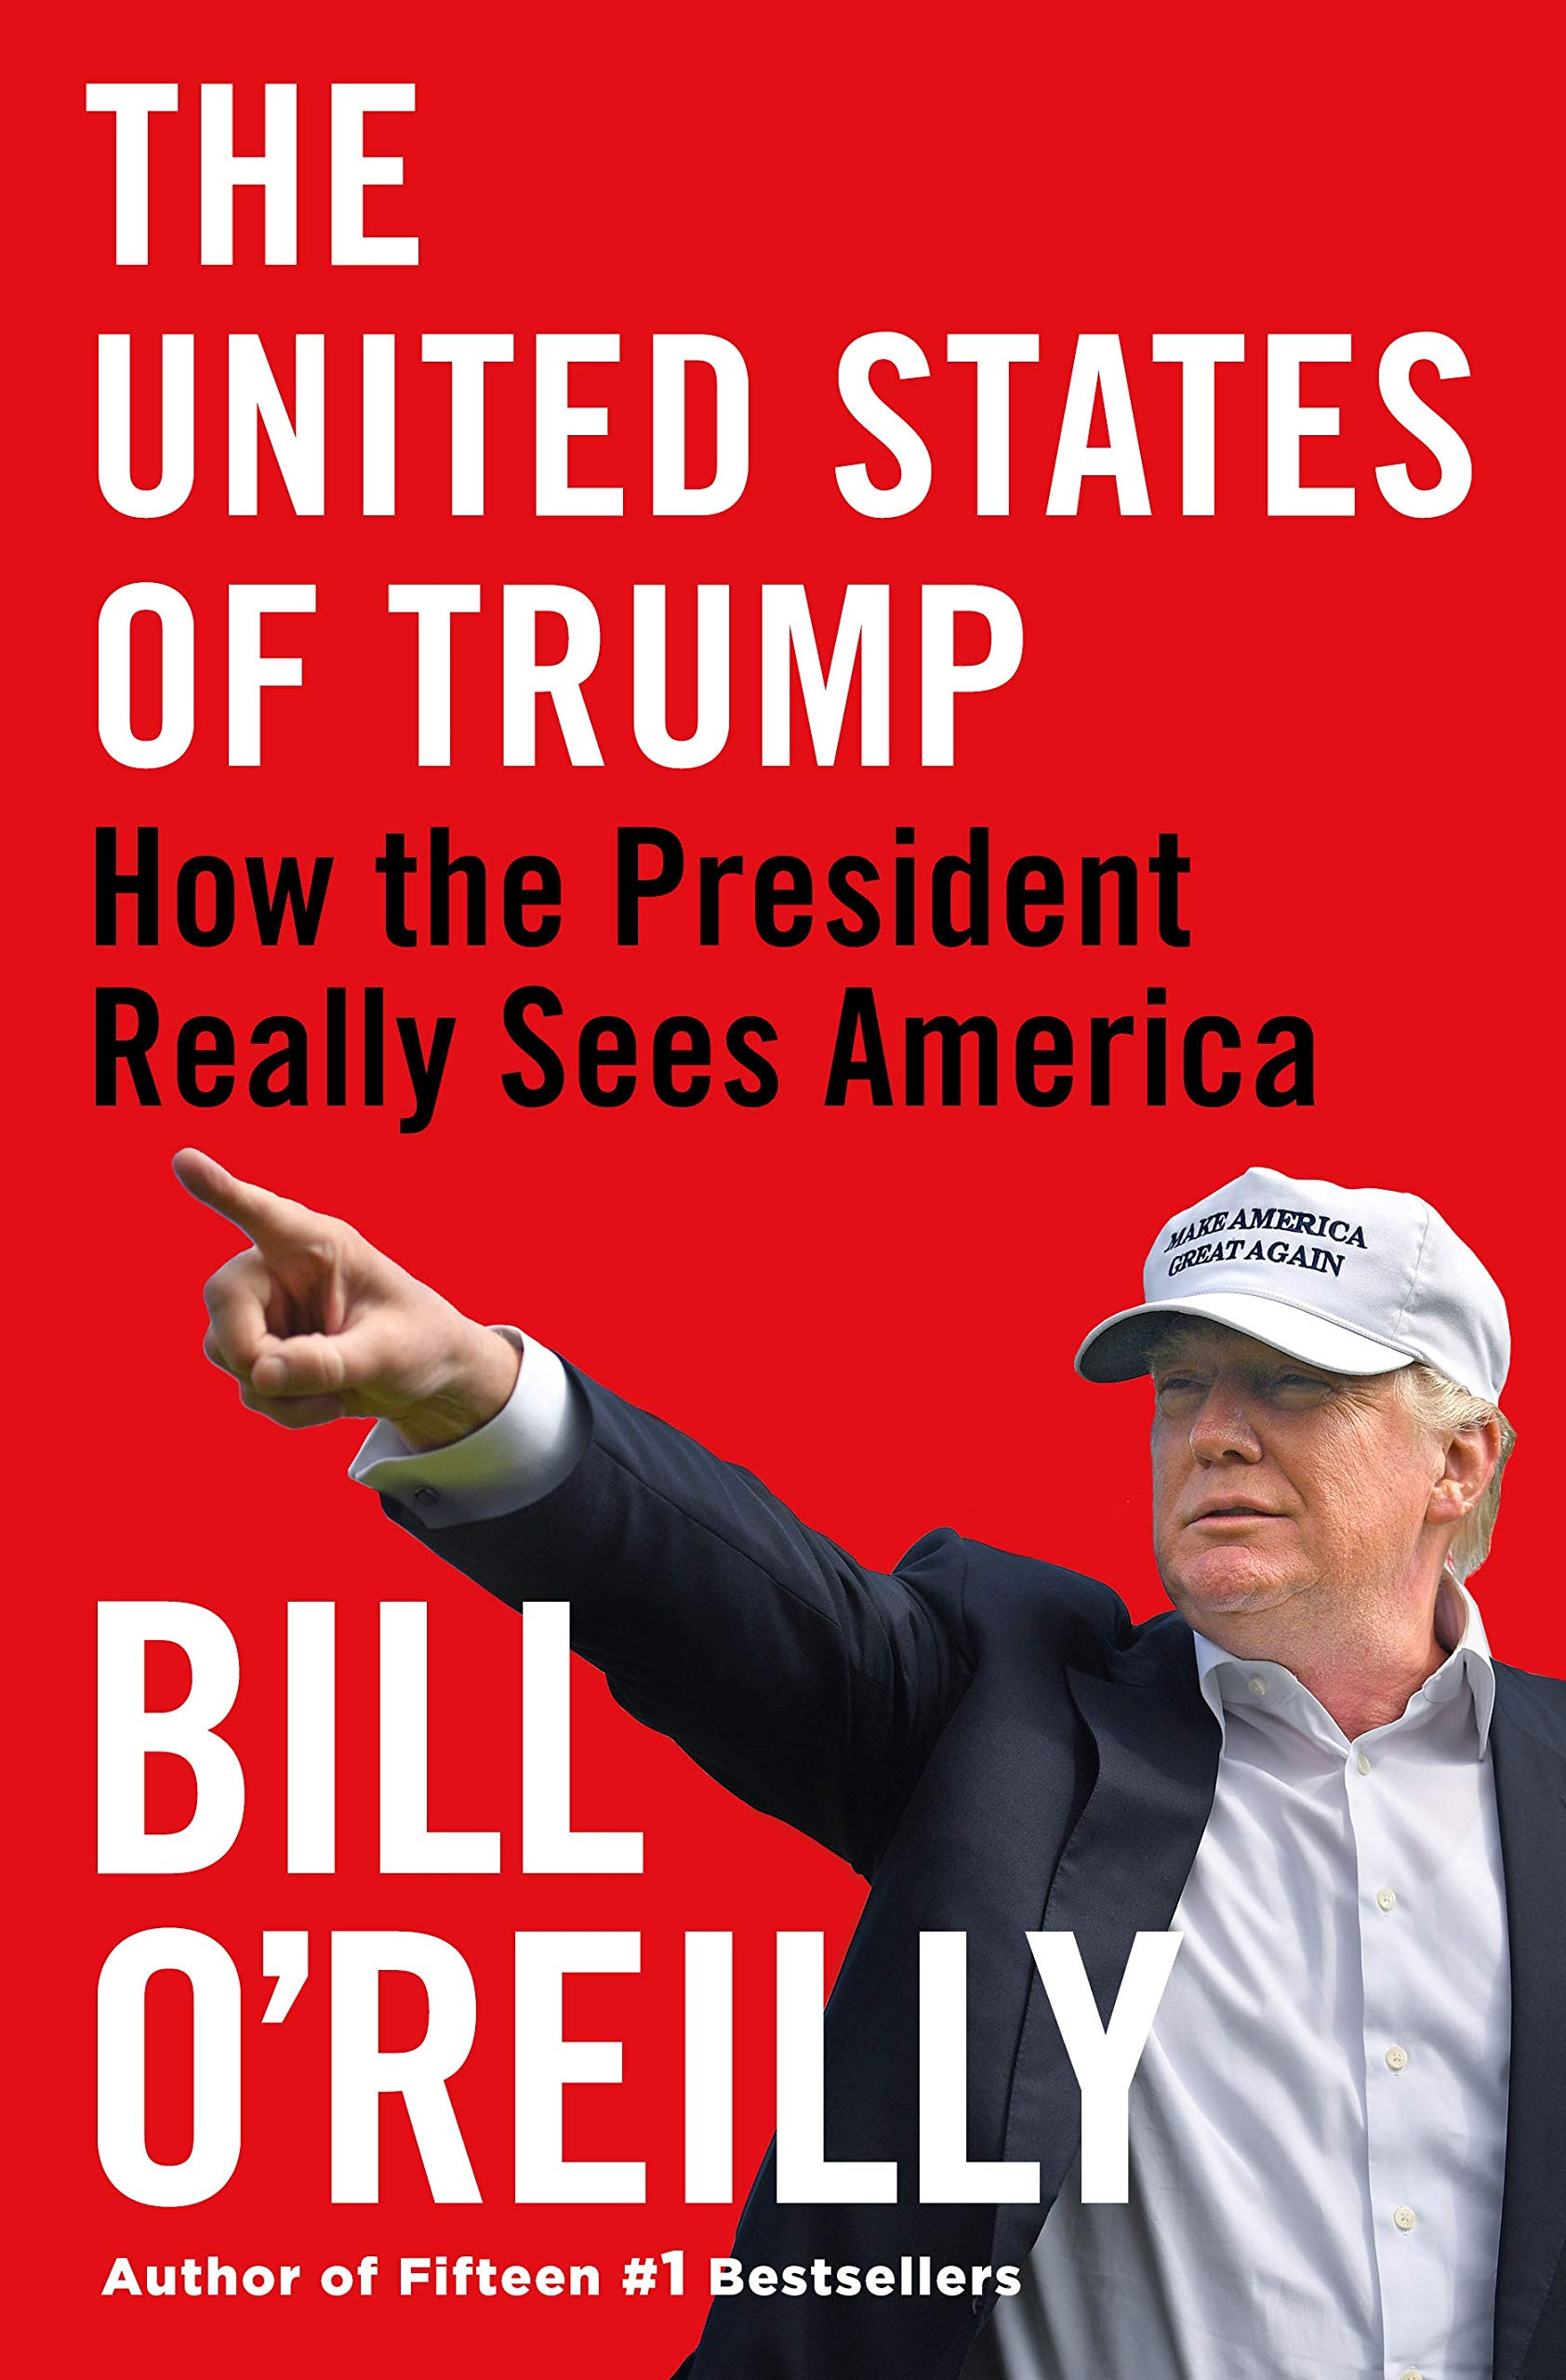 The United States of Trump: How the President Really Sees America by Henry Holt and Co.